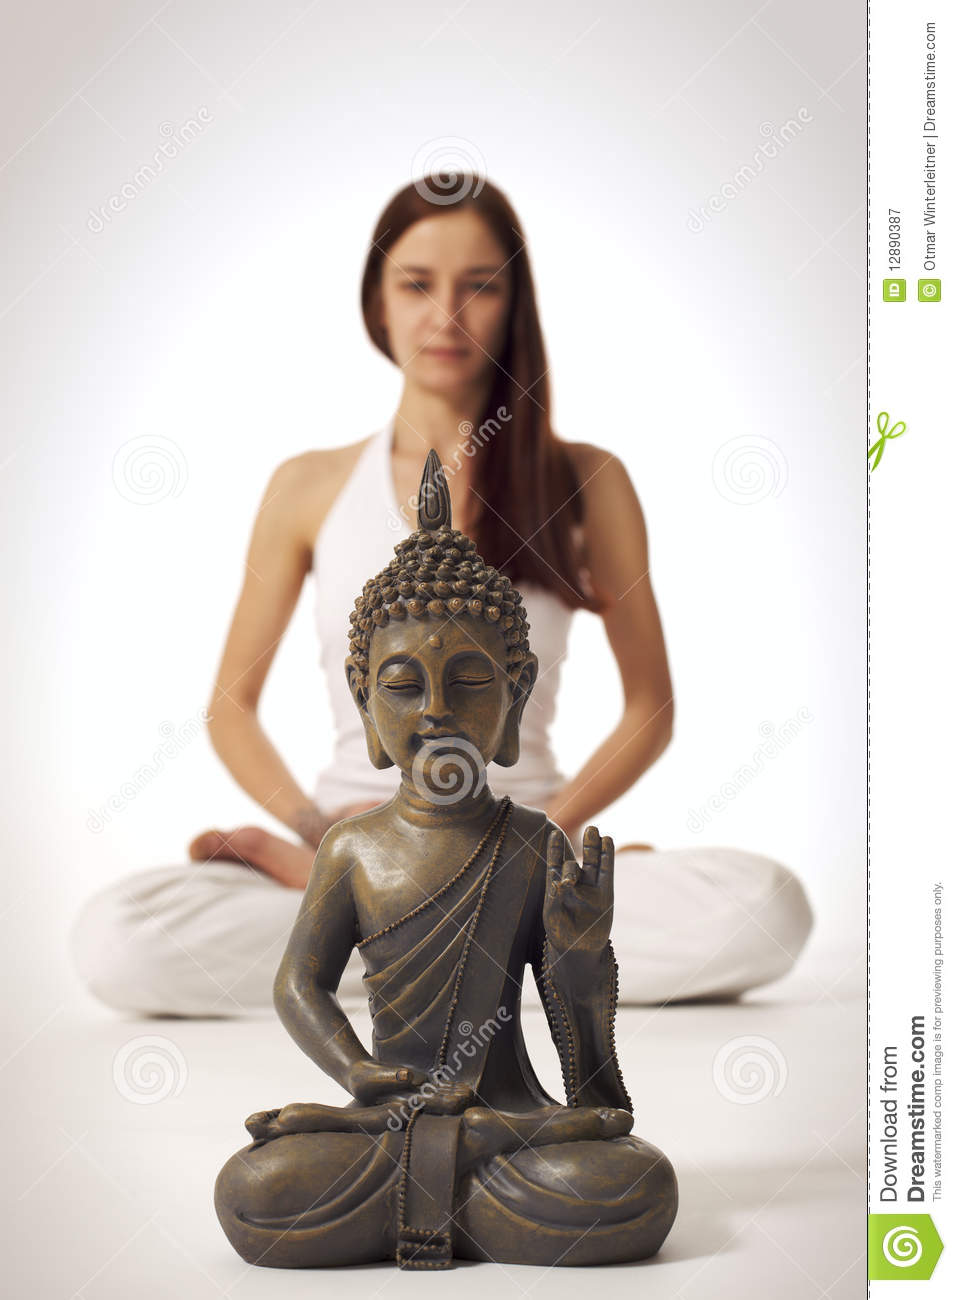 upper darby buddhist single women Common adoption questions - articles frequently asked adoption questions top 10 questions by women considering adoption in my situation, am i still able to place my child for adoption.